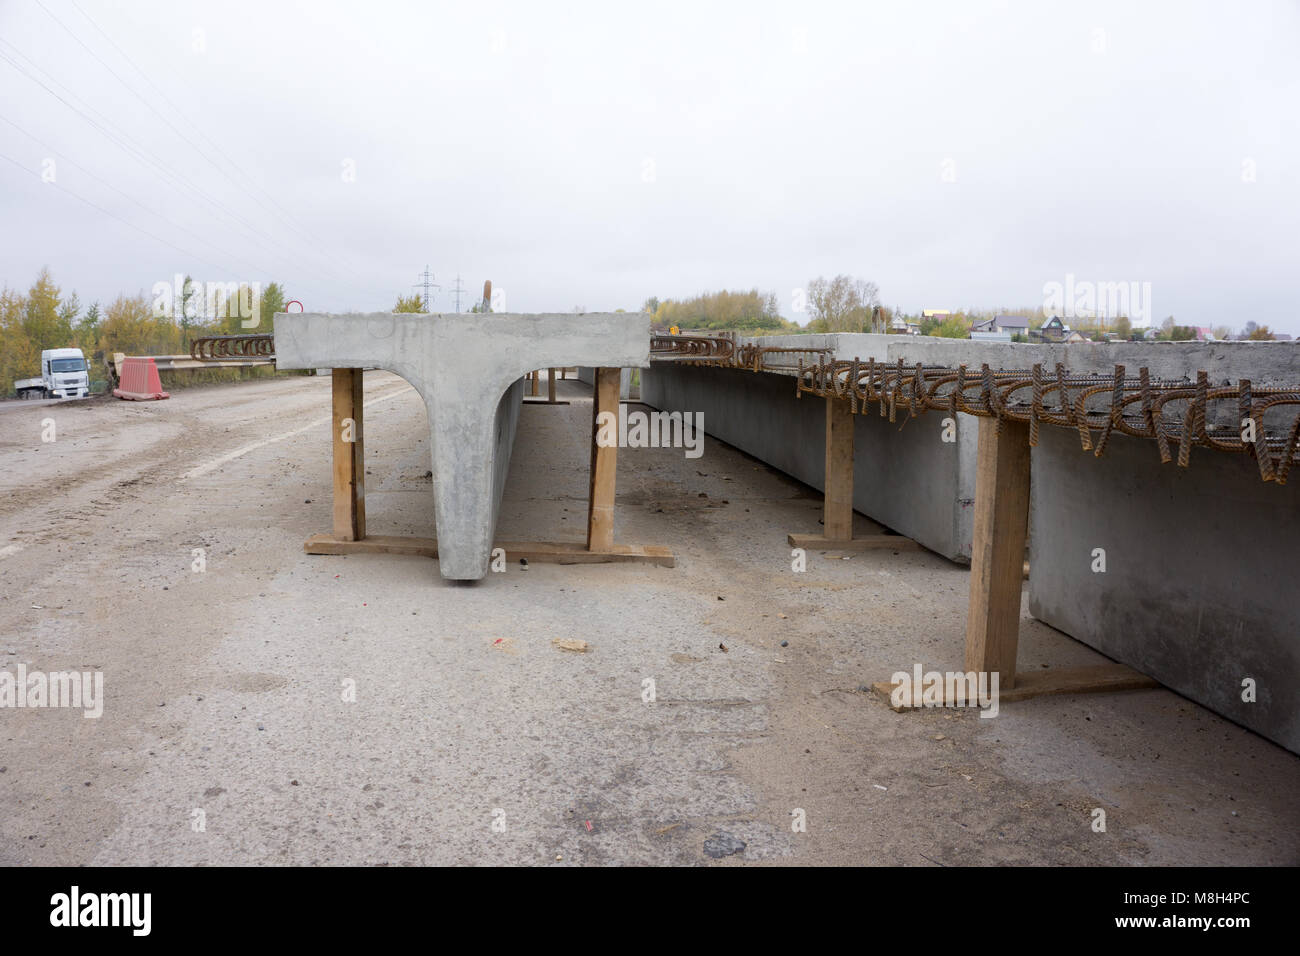 A gap in the concrete bridge ad a symbol of risk and danger - Stock Image